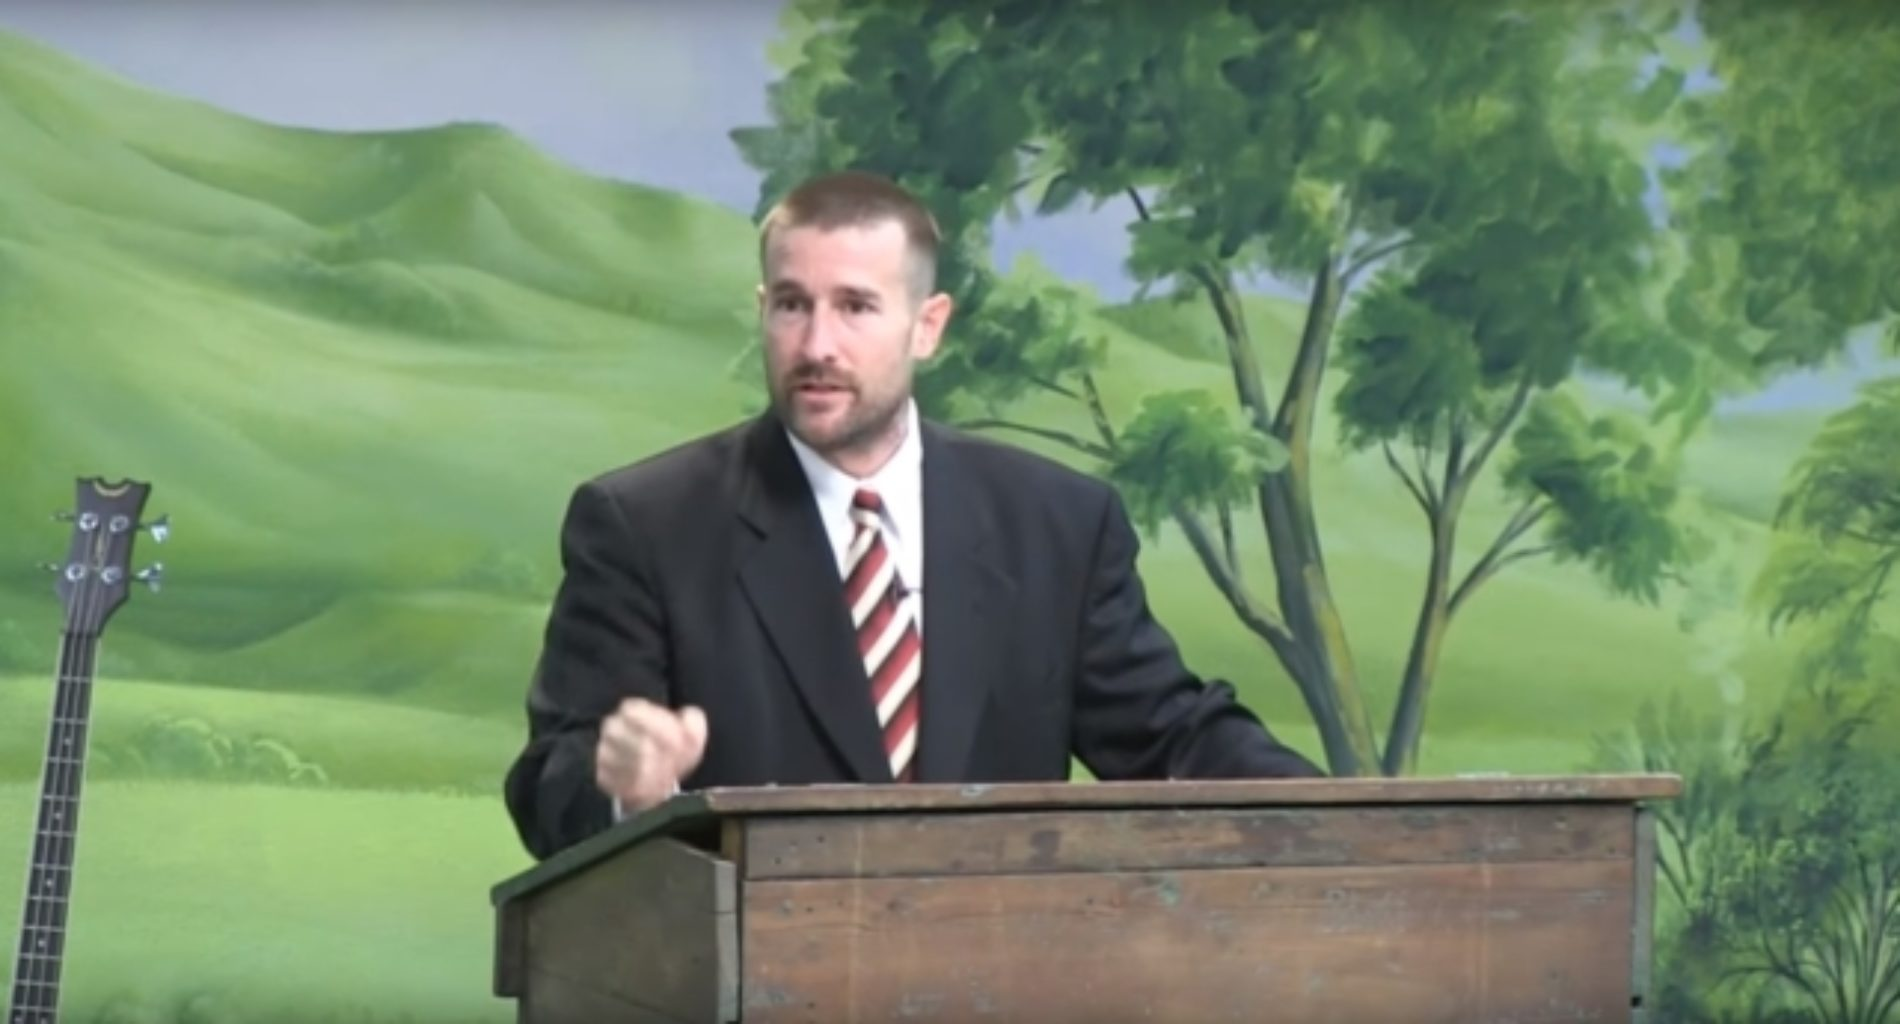 South African churches snub visit from US homophobic pastor, Steven Anderson